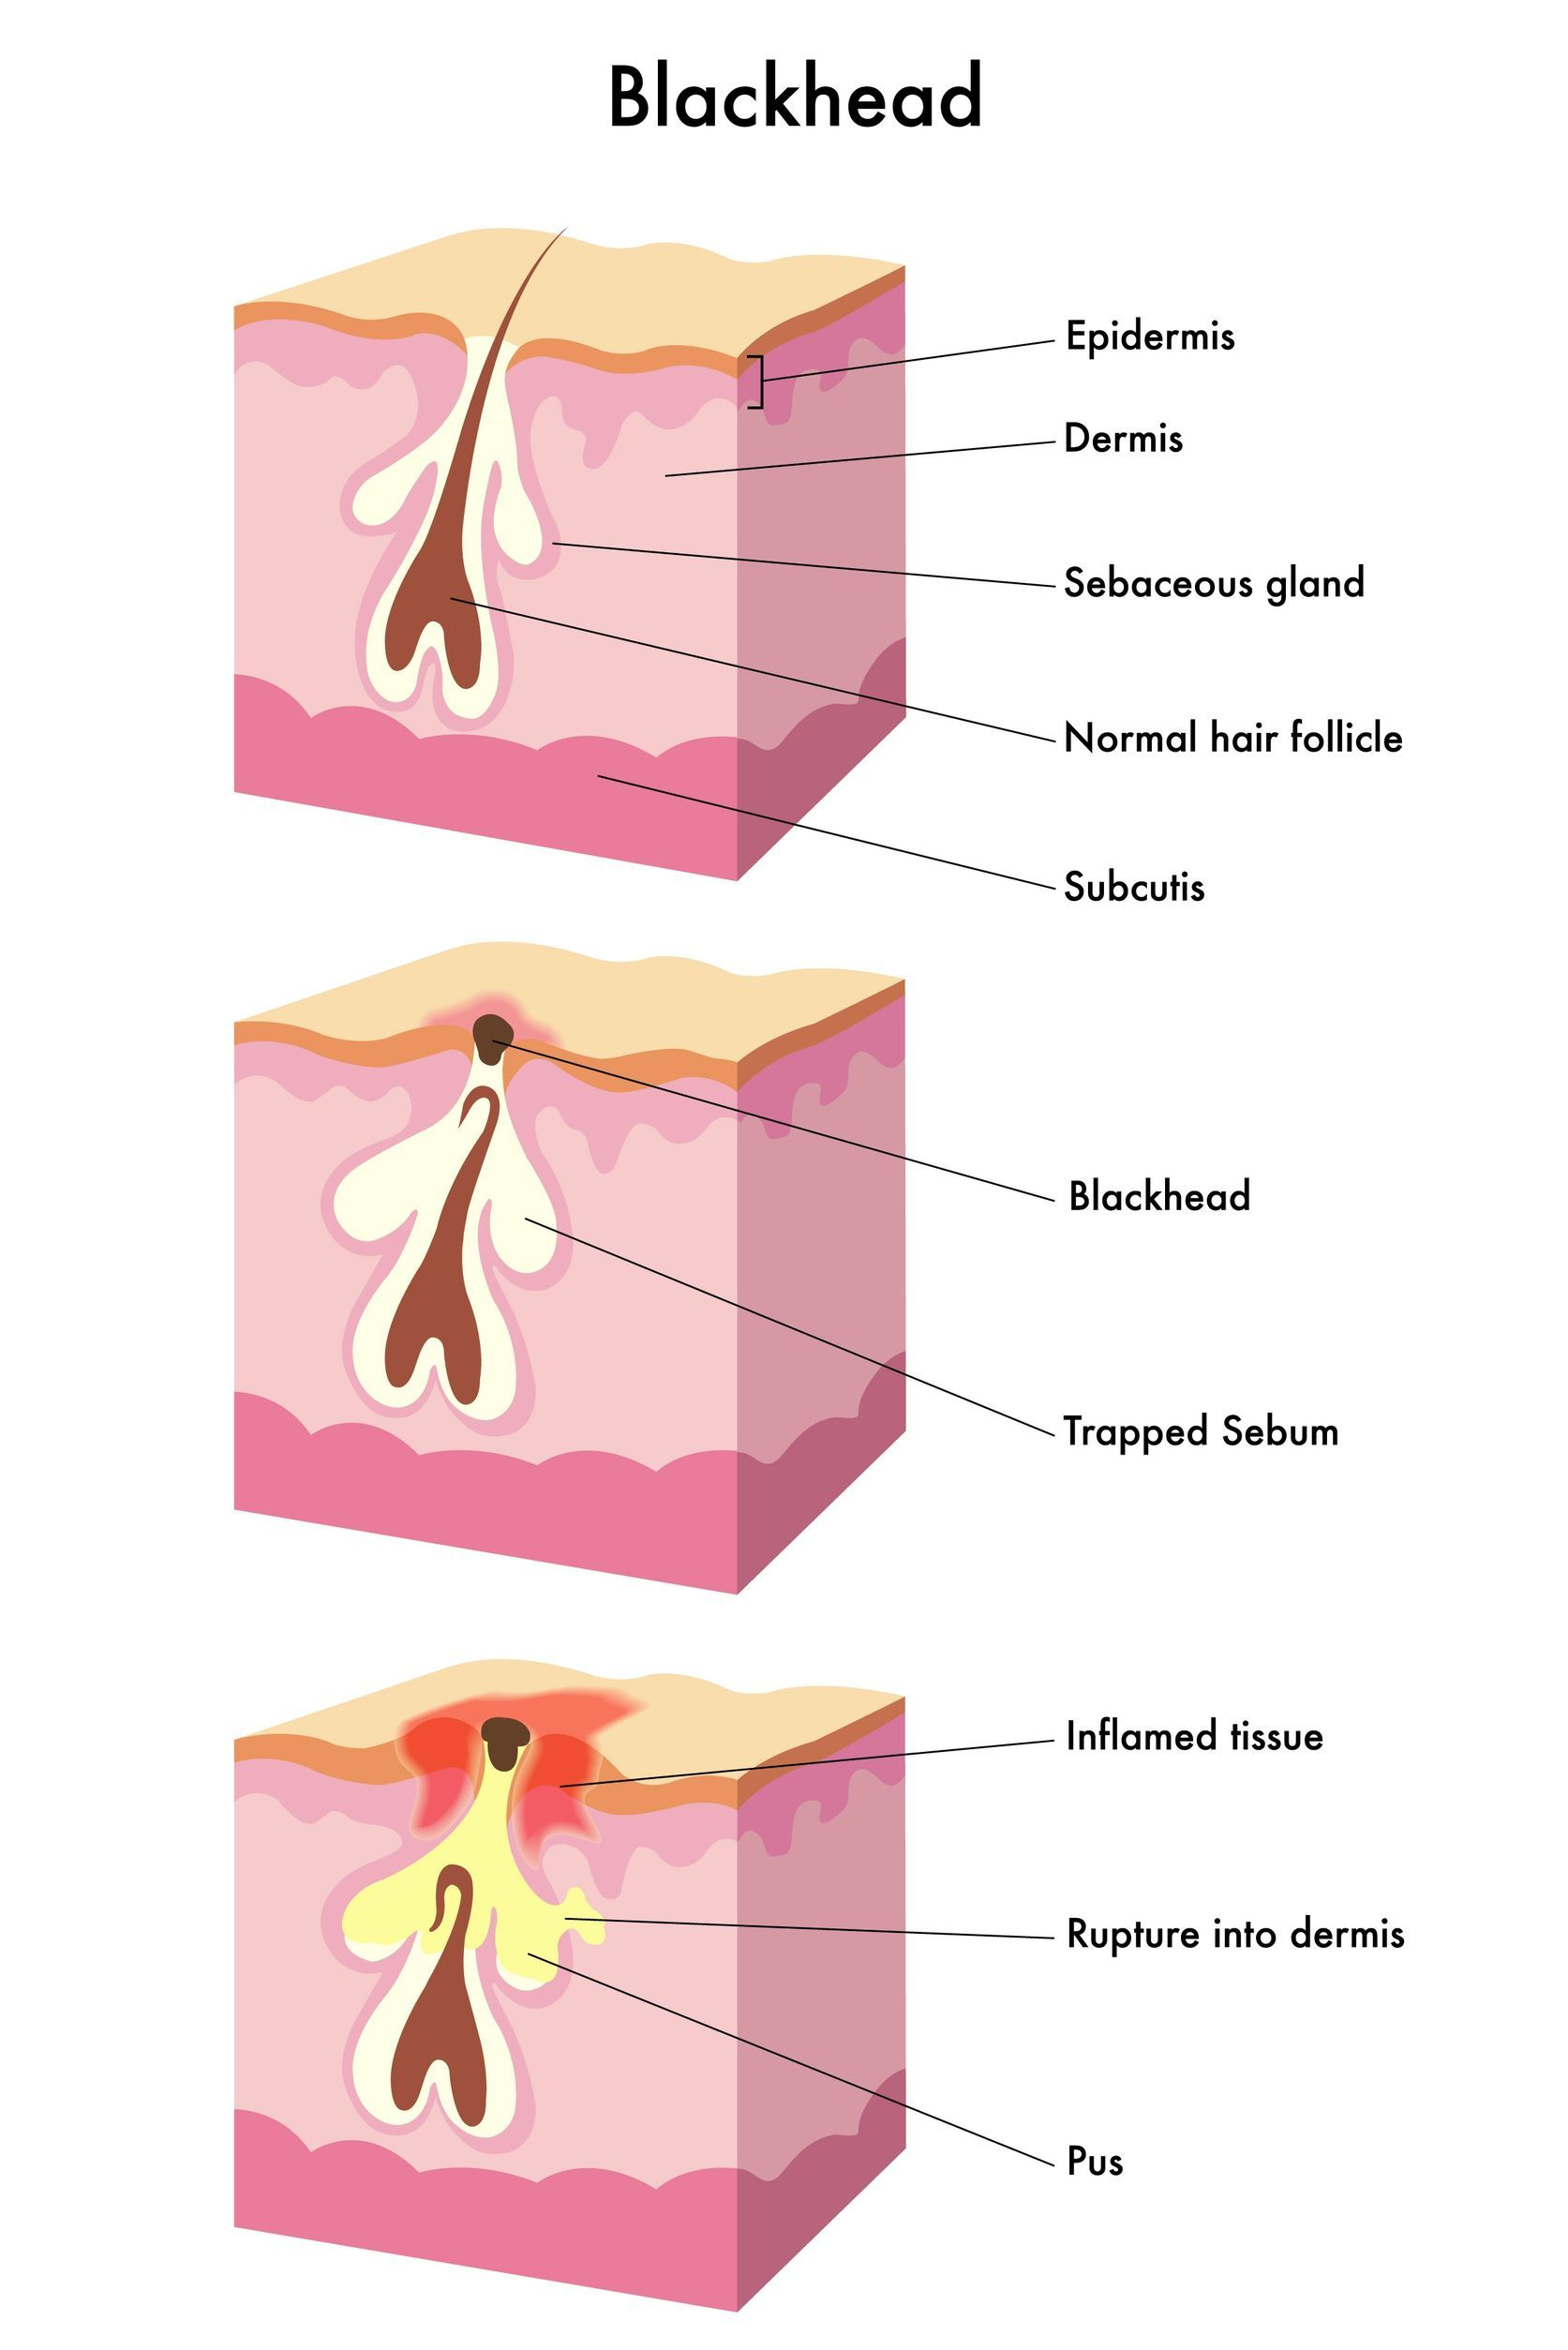 How To Get Rid Of Blackheads My Beauty Bunny Cruelty Free Lifestyle Blog Exposed Skin Care Dry Skin Care Cruelty Free Skin Care